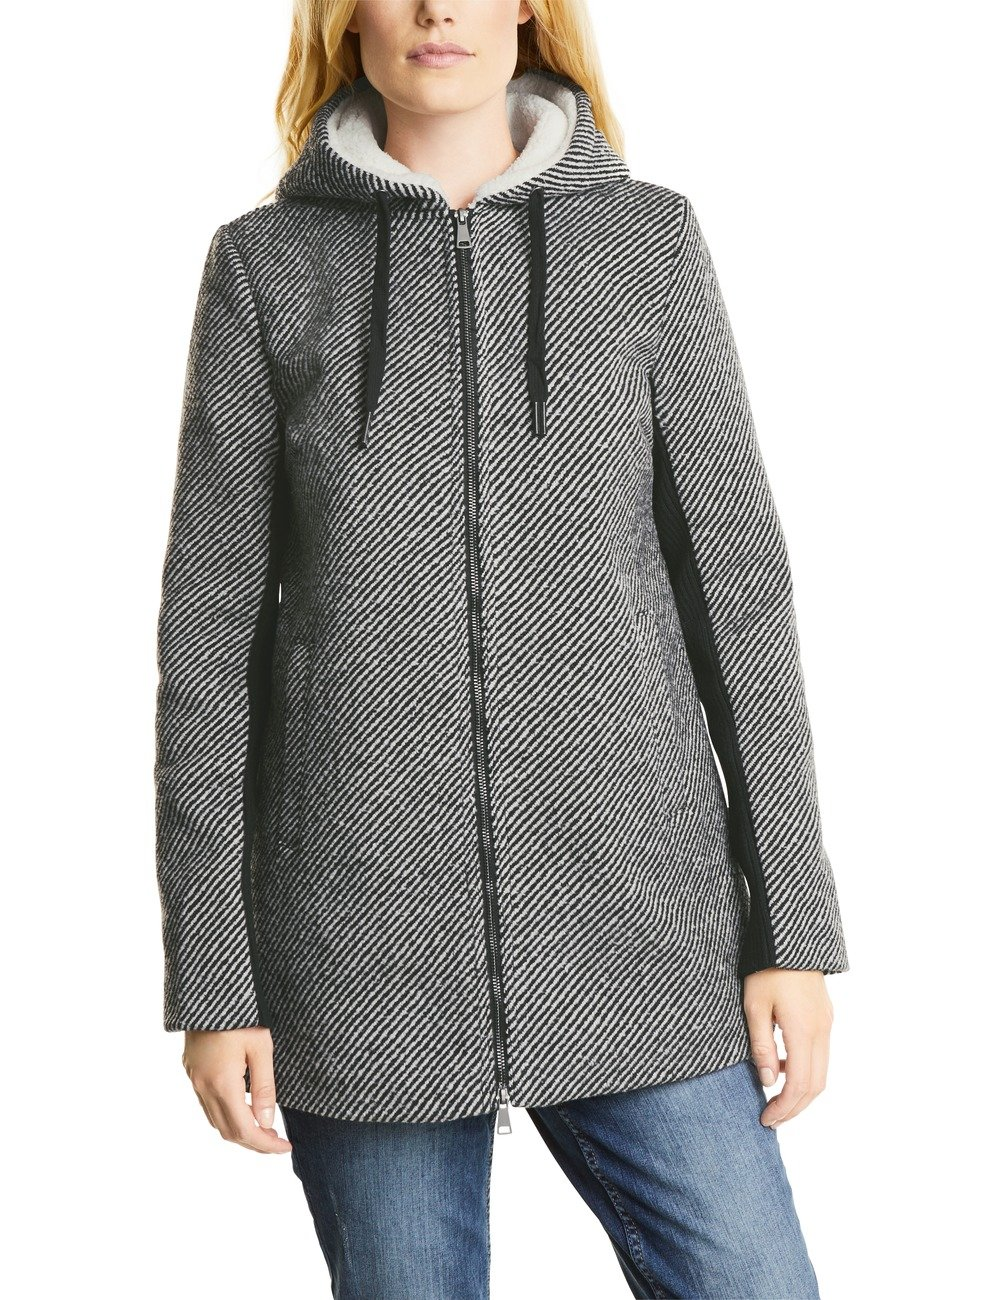 ManteauGraudark large Cosy Cecil Grey Coat 21029Xx Femme Structured Pk8n0wO